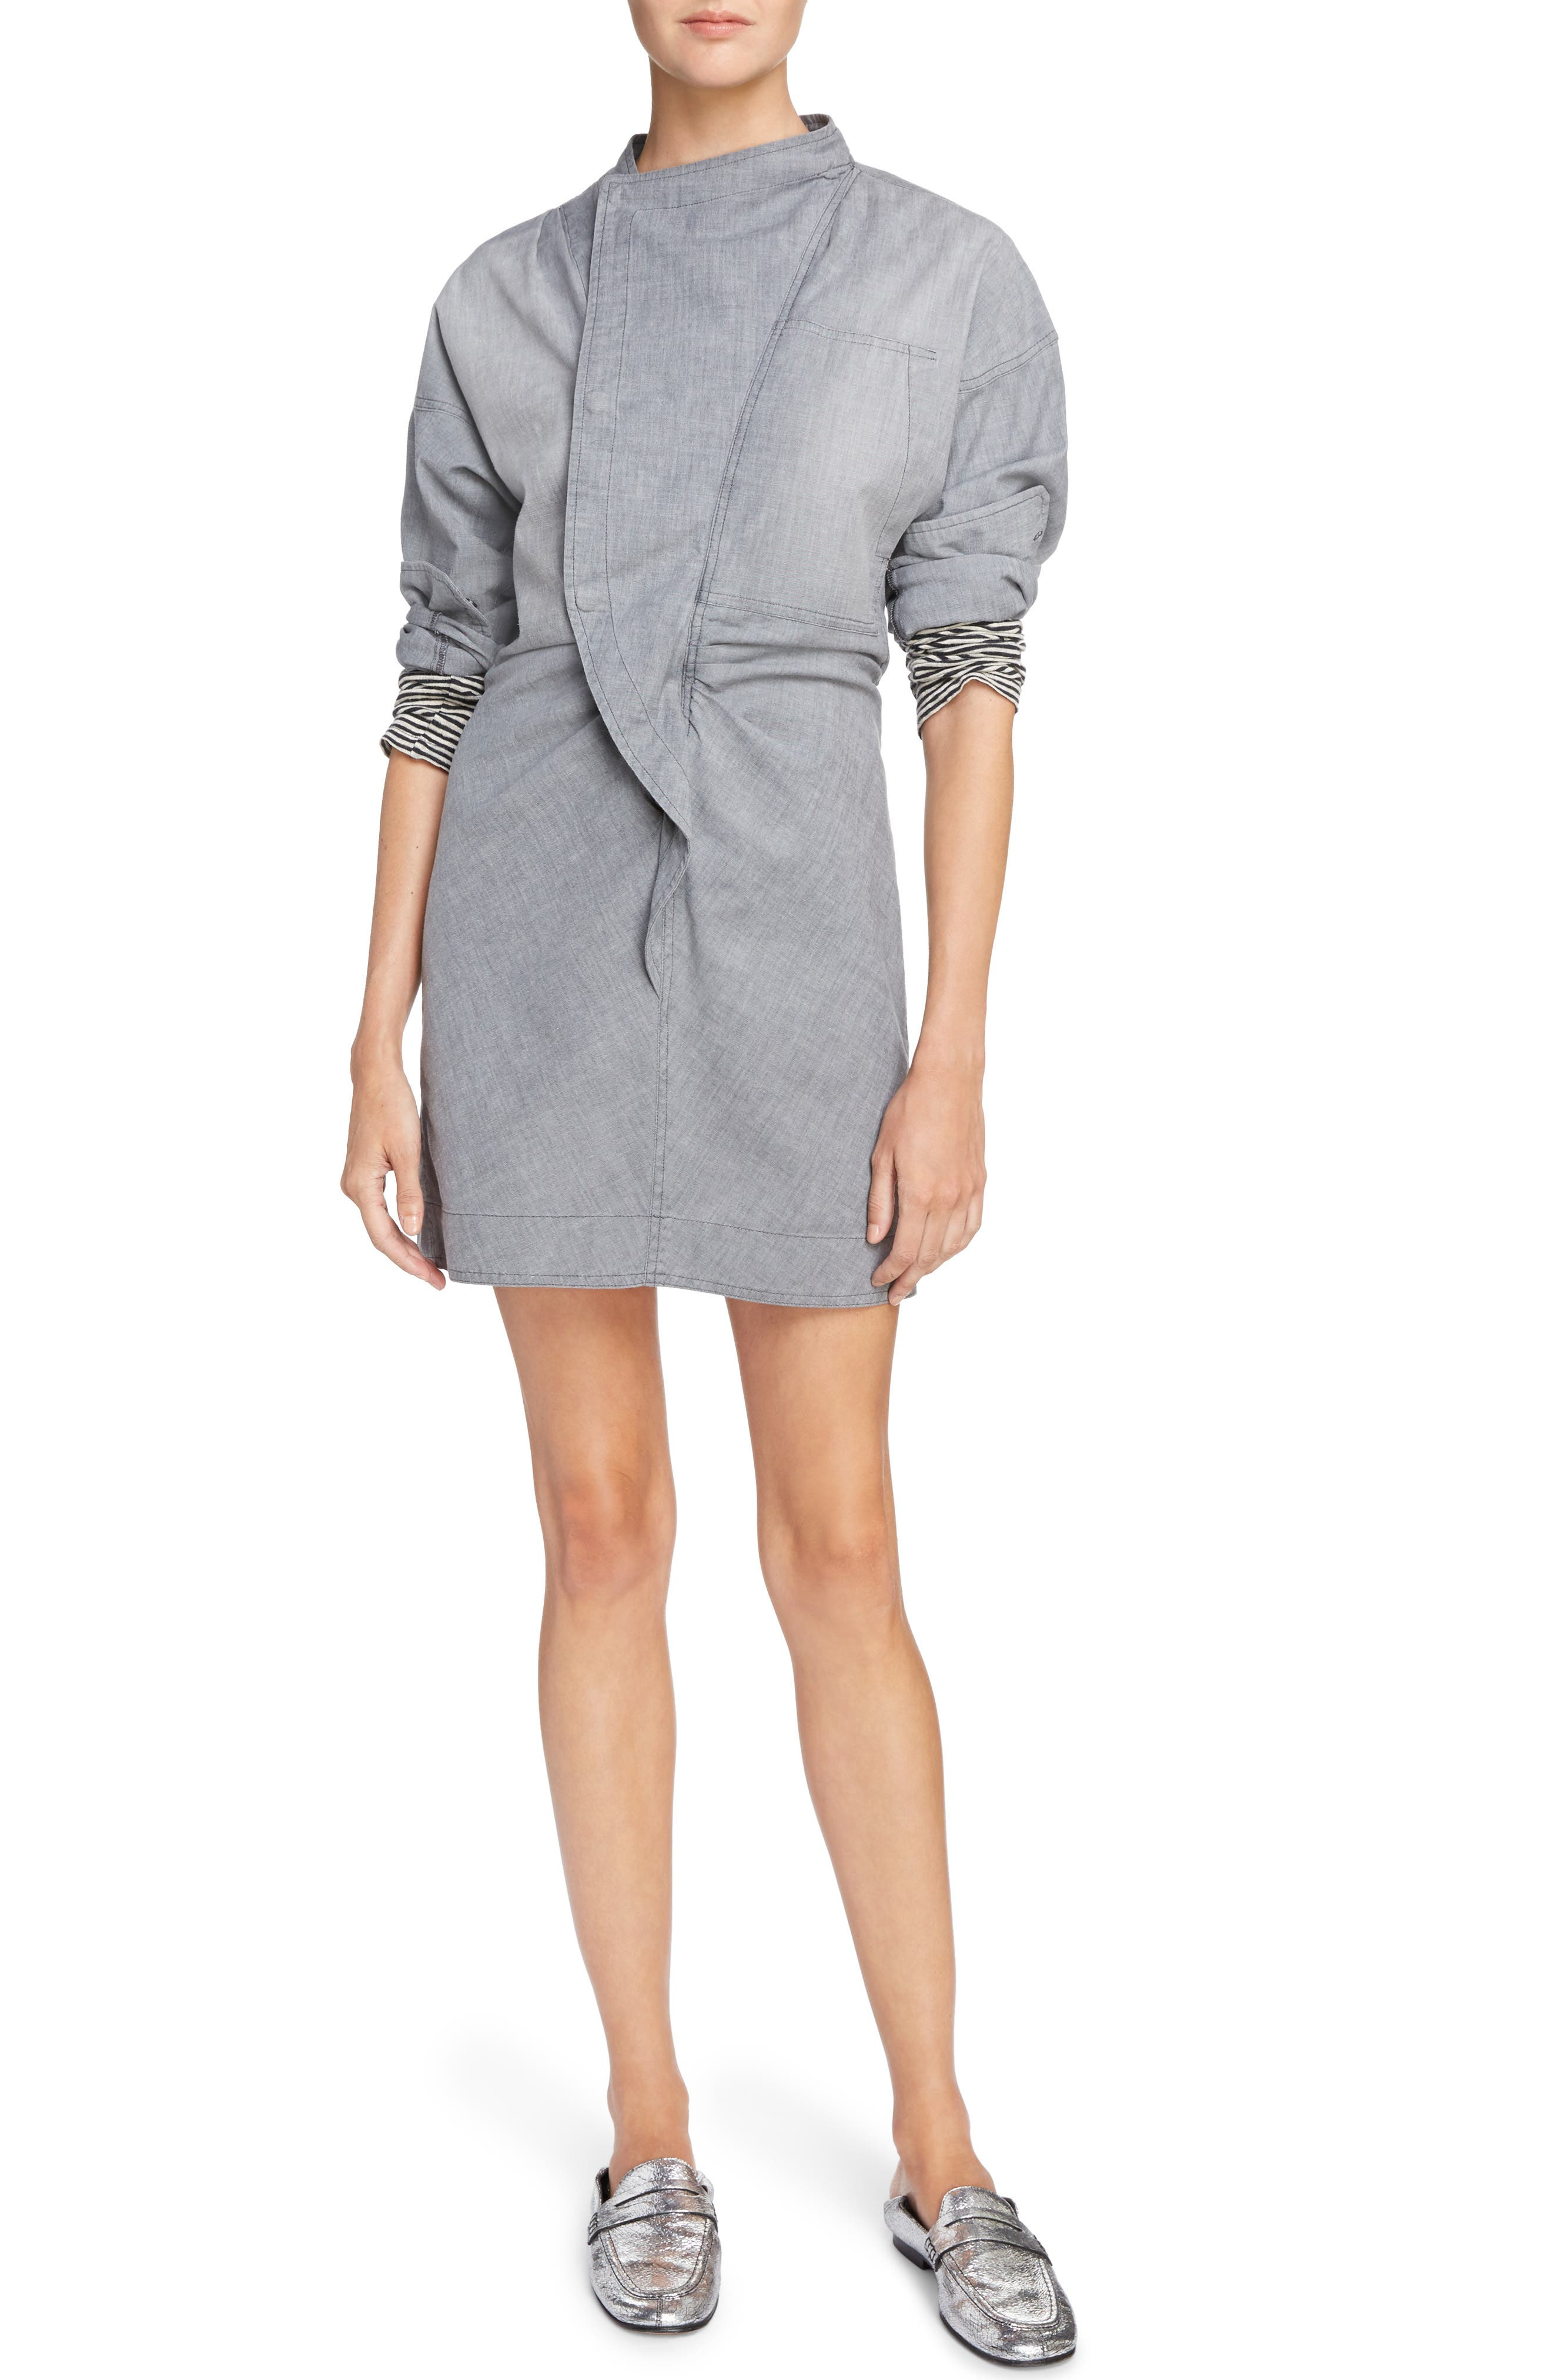 Alternate Image 1 Selected - Isabel Marant Étoile Lindsey Chambray Dress